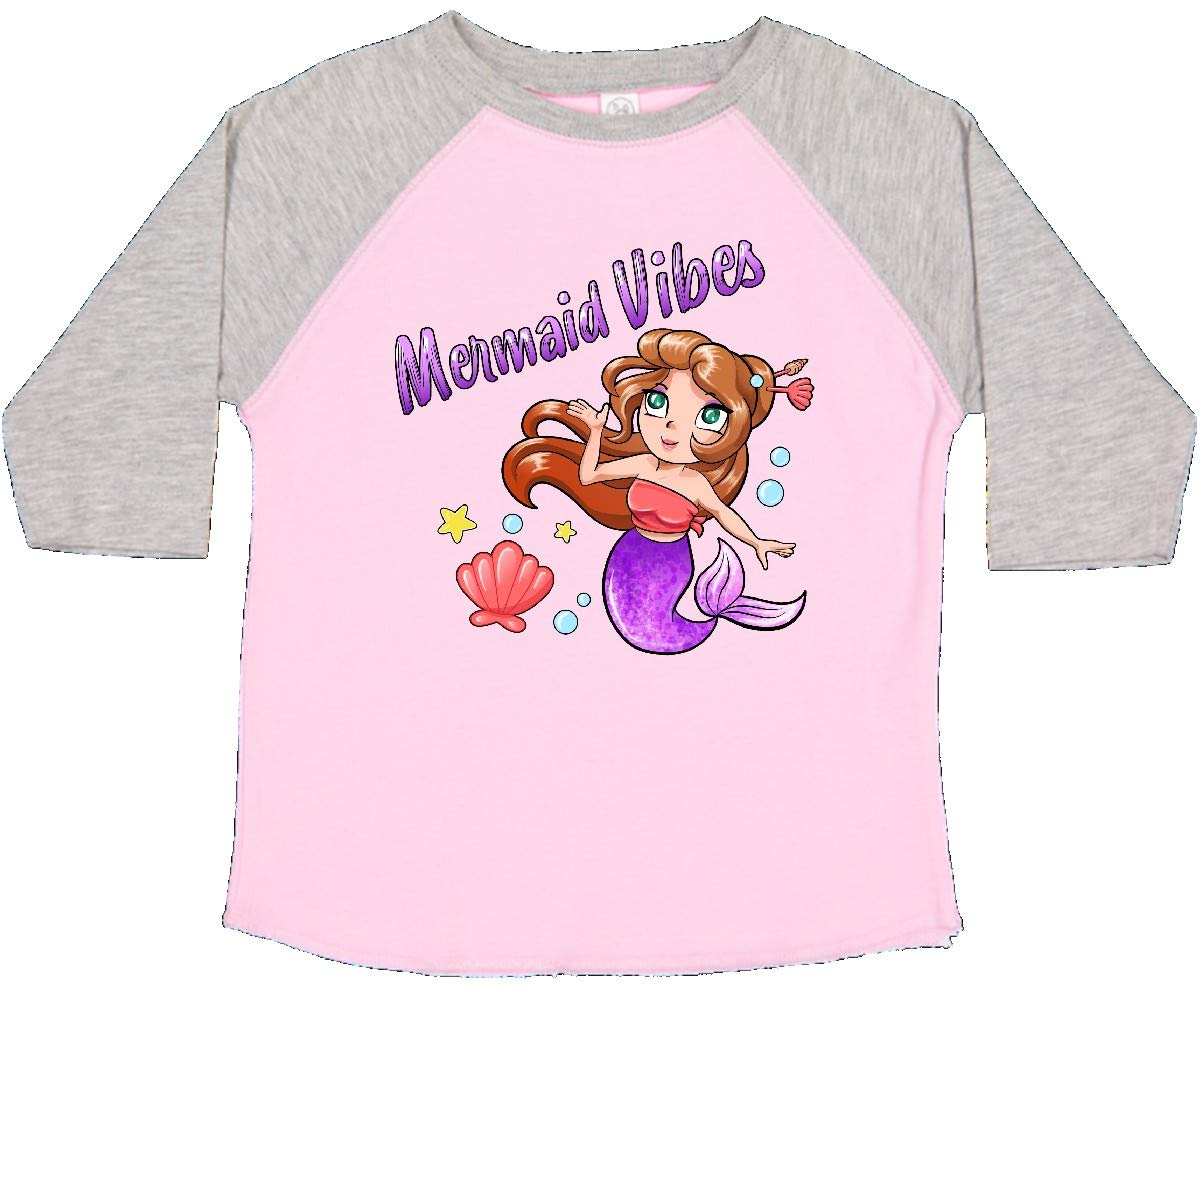 Cute Mermaid with Purple Tail Toddler T-Shirt inktastic Mermaid Vibes